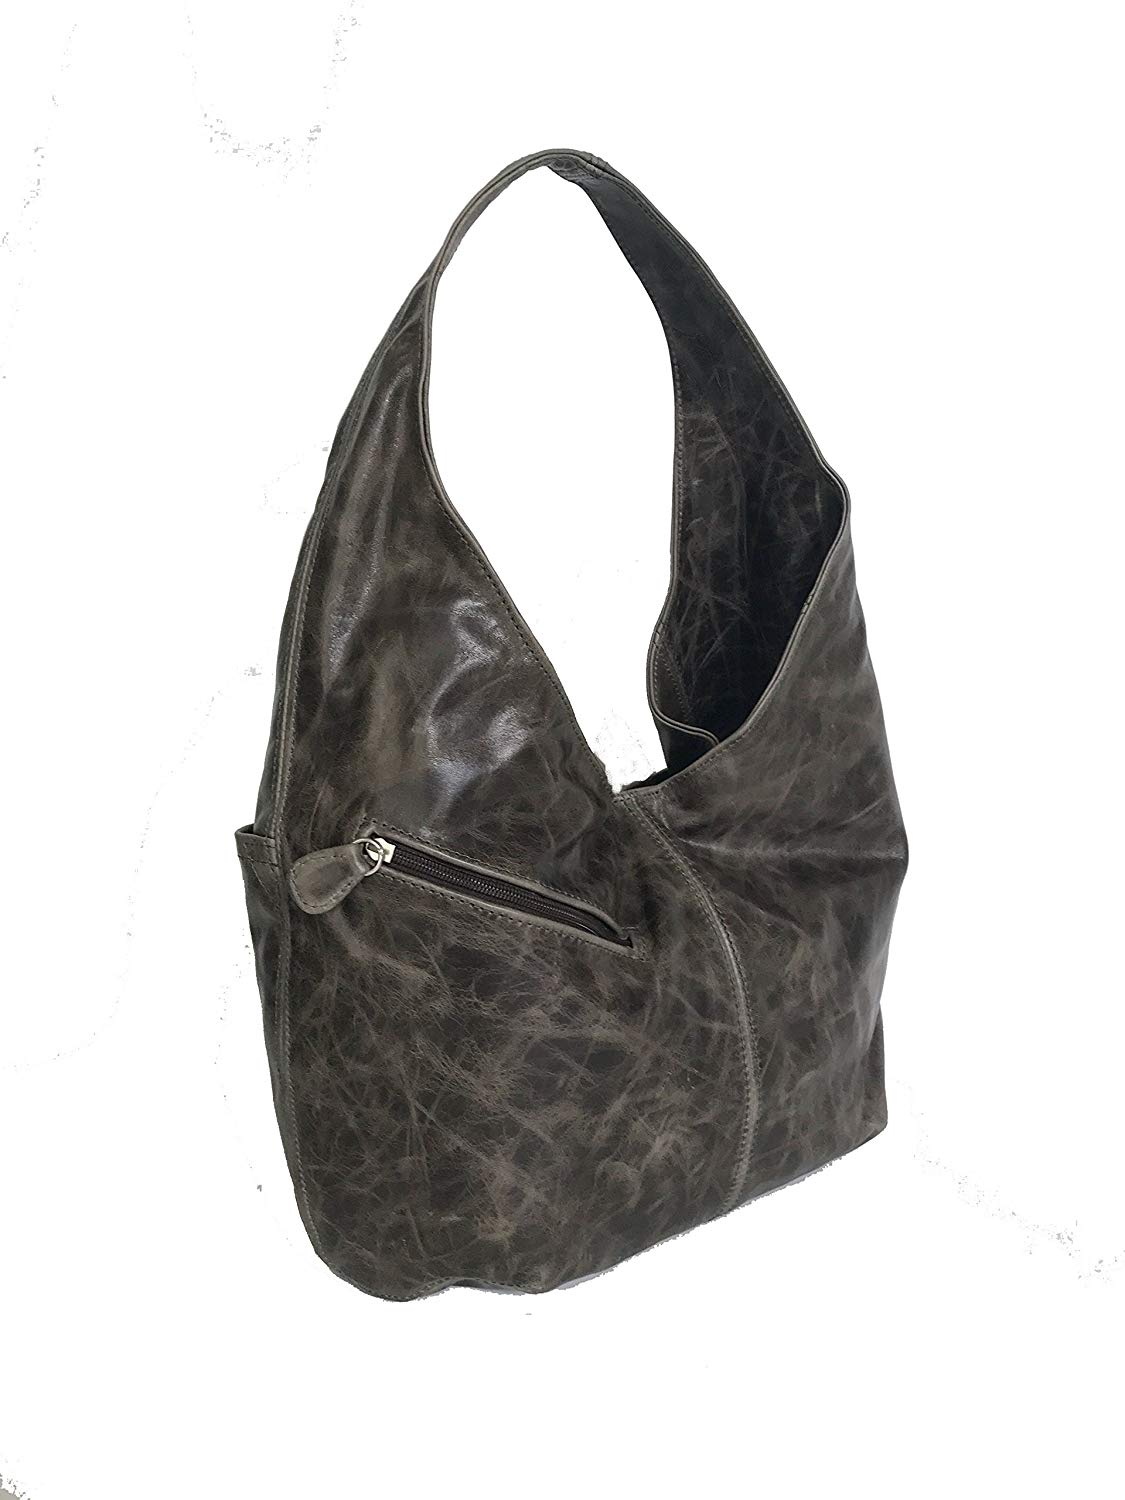 d02fb80e1a Get Quotations · Fgalaze Distressed Leather Hobo Bag